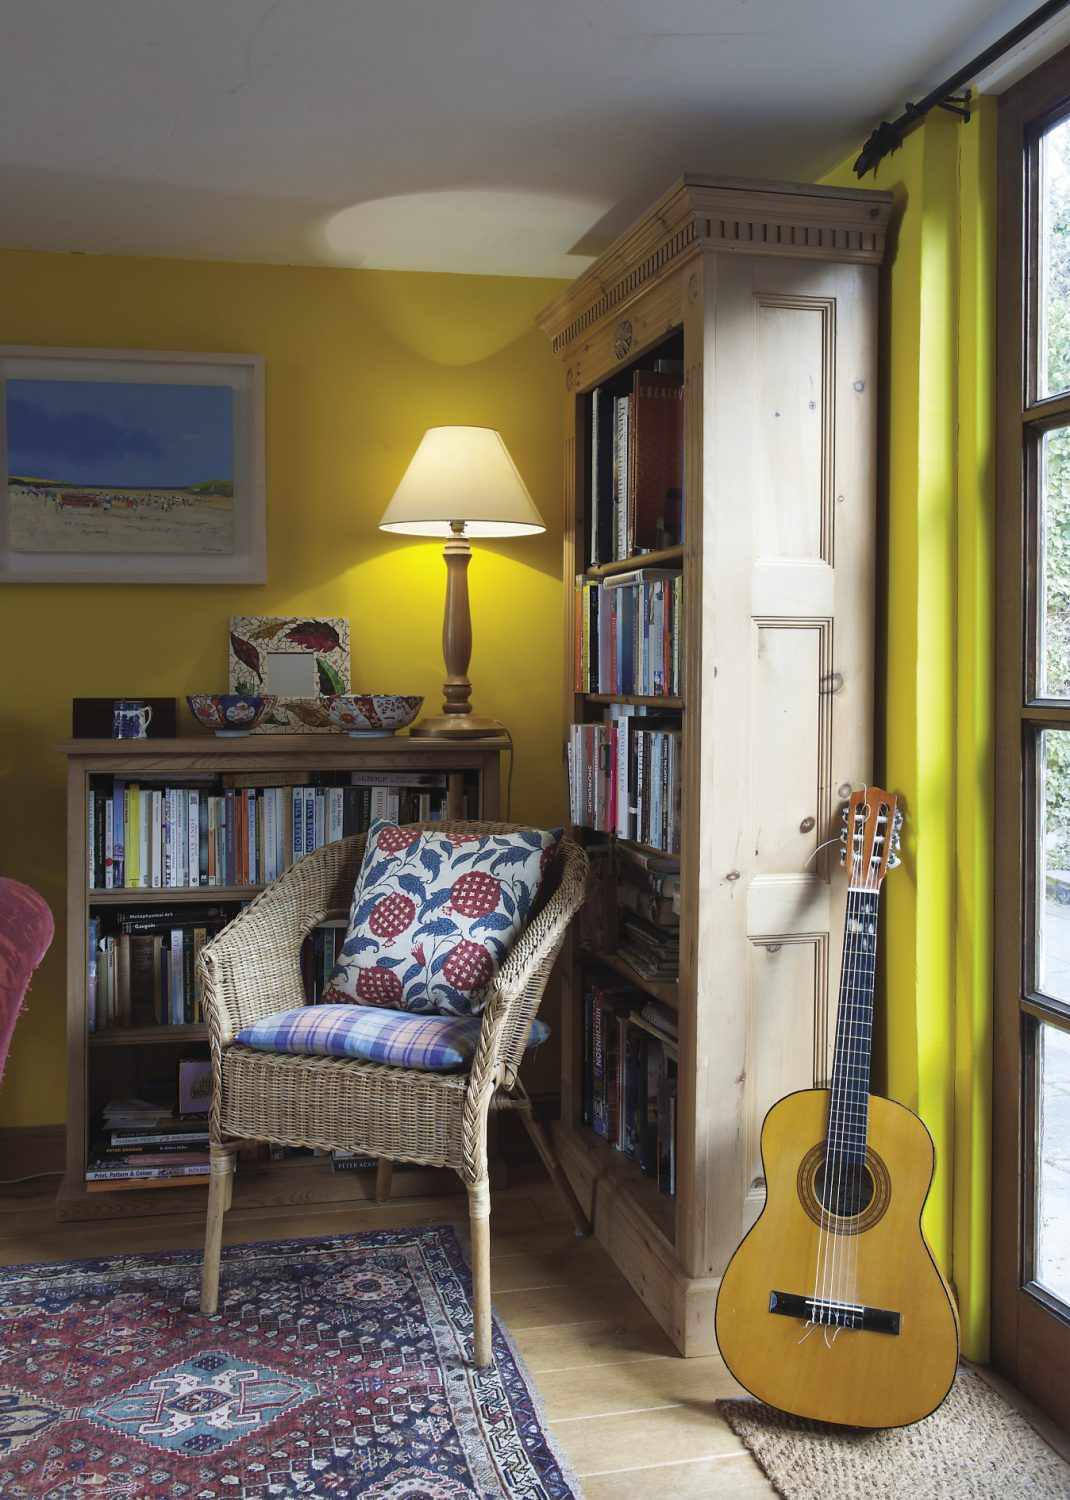 An accoustic guitar propped in one corner alludes to Oliver's phenomenal music collection